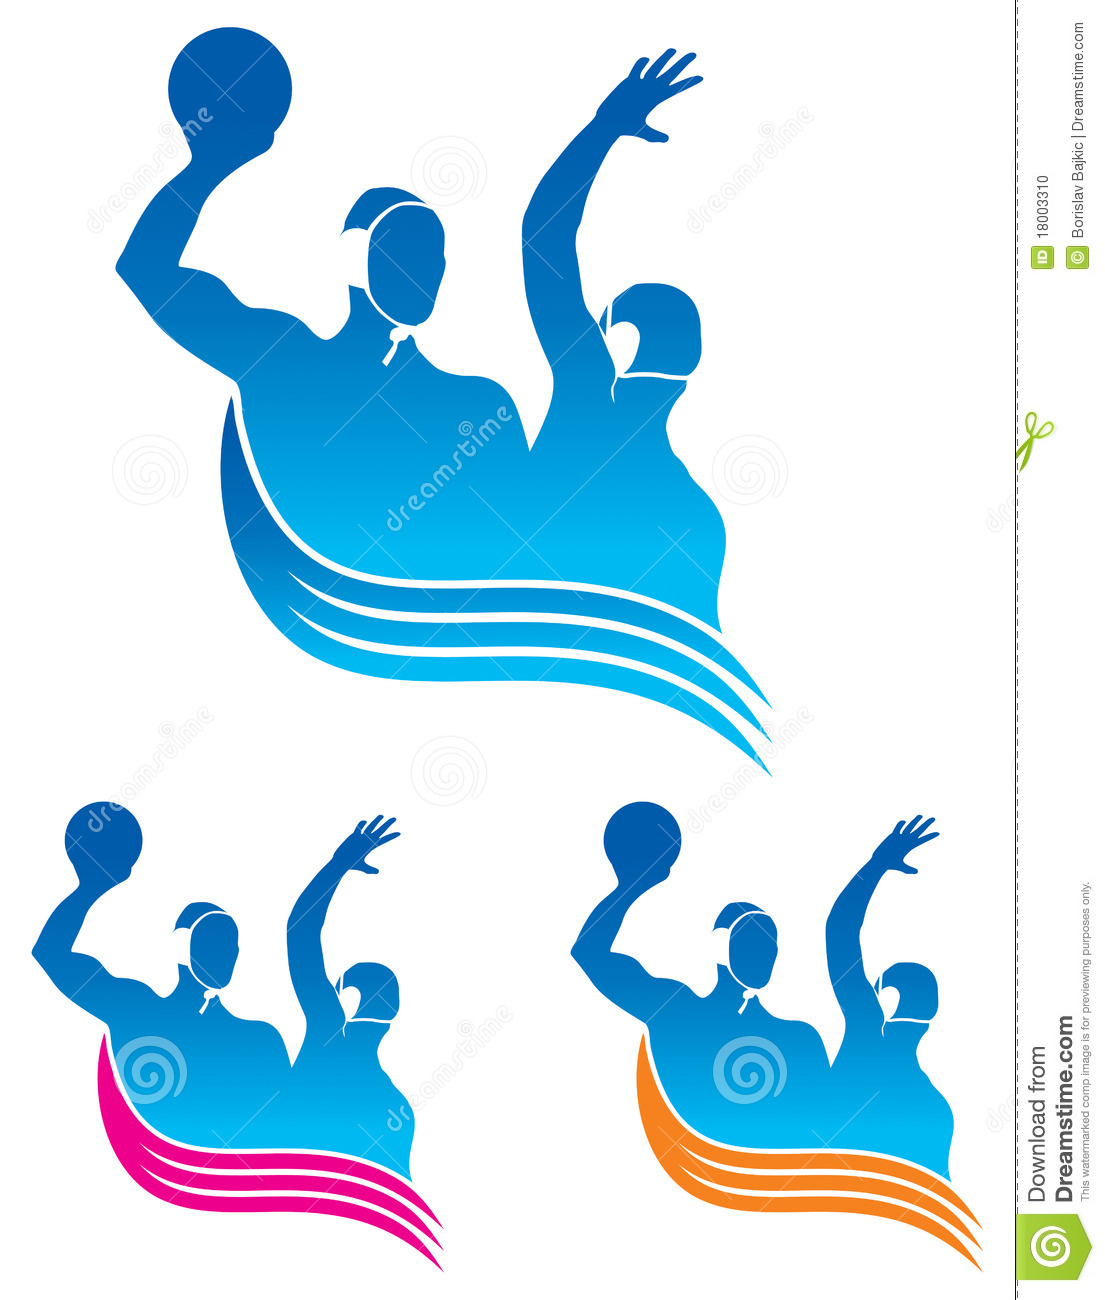 Water Polo Logo Stock Photo - Image: 18003310 Adrien Brody Art